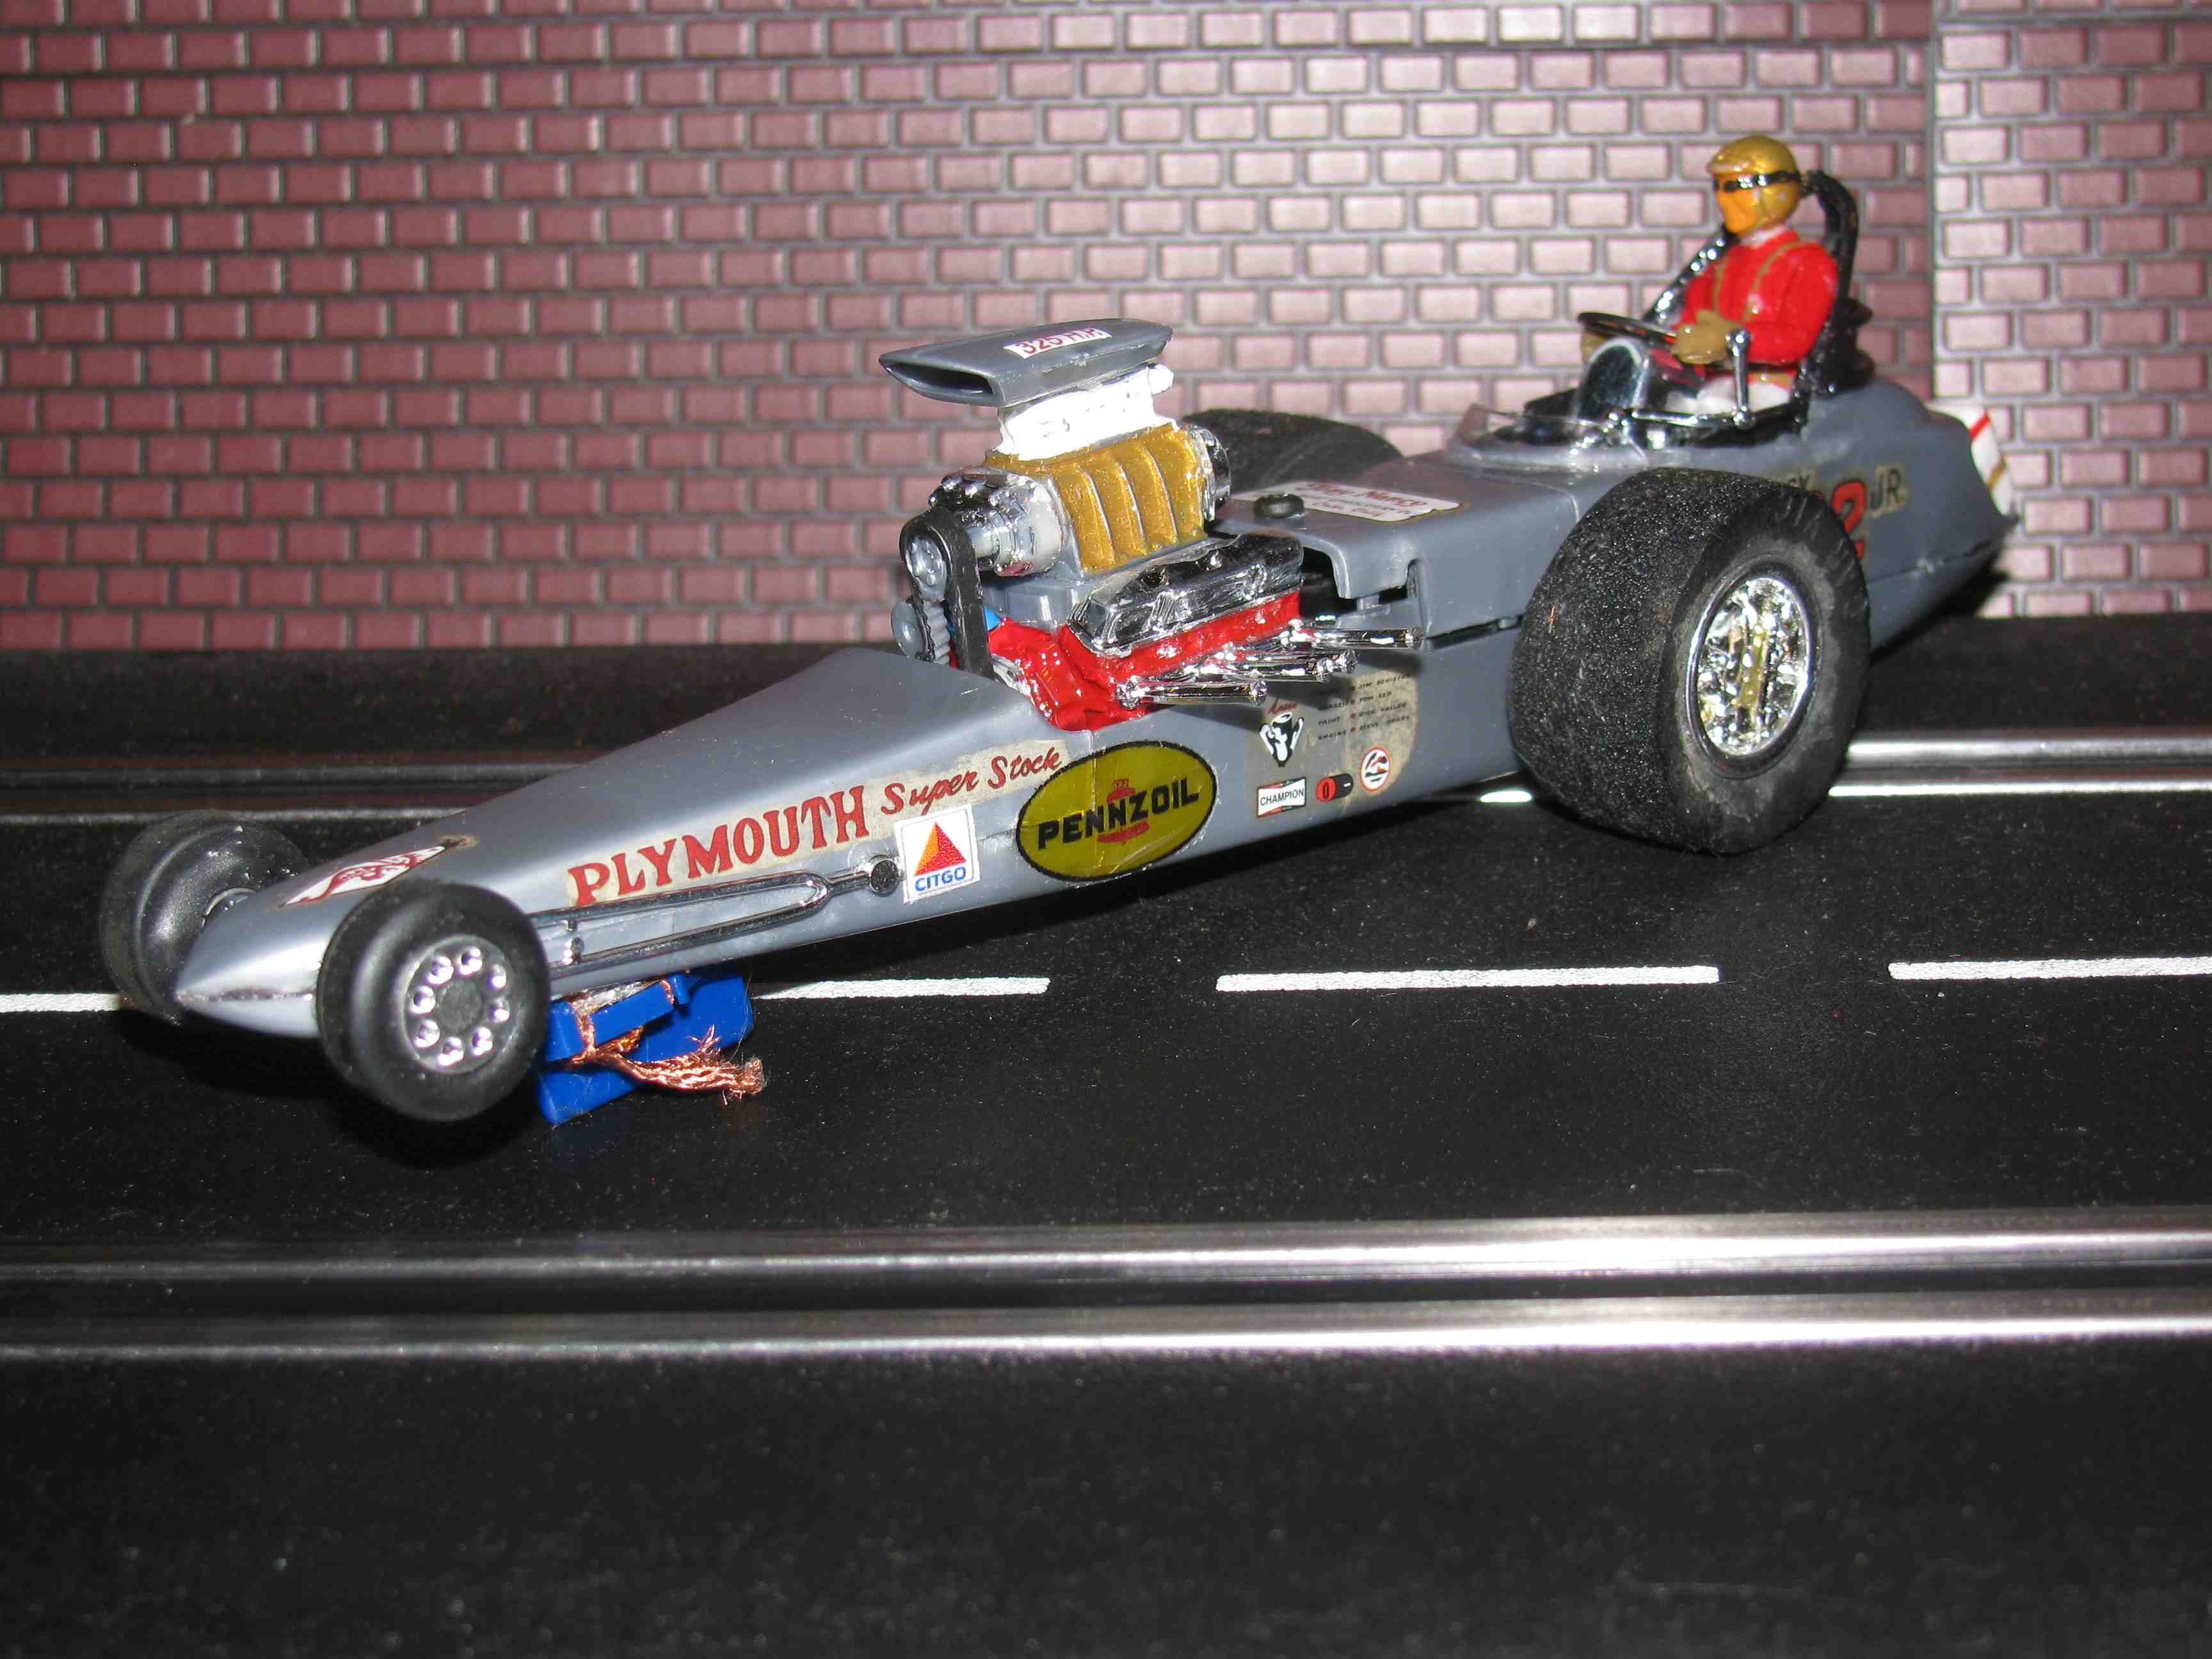 * SOLD * Vintage Revell Monogram Tony Nancy Plymouth Super Stock Dragster Slot Car 1/32 Scale - #22